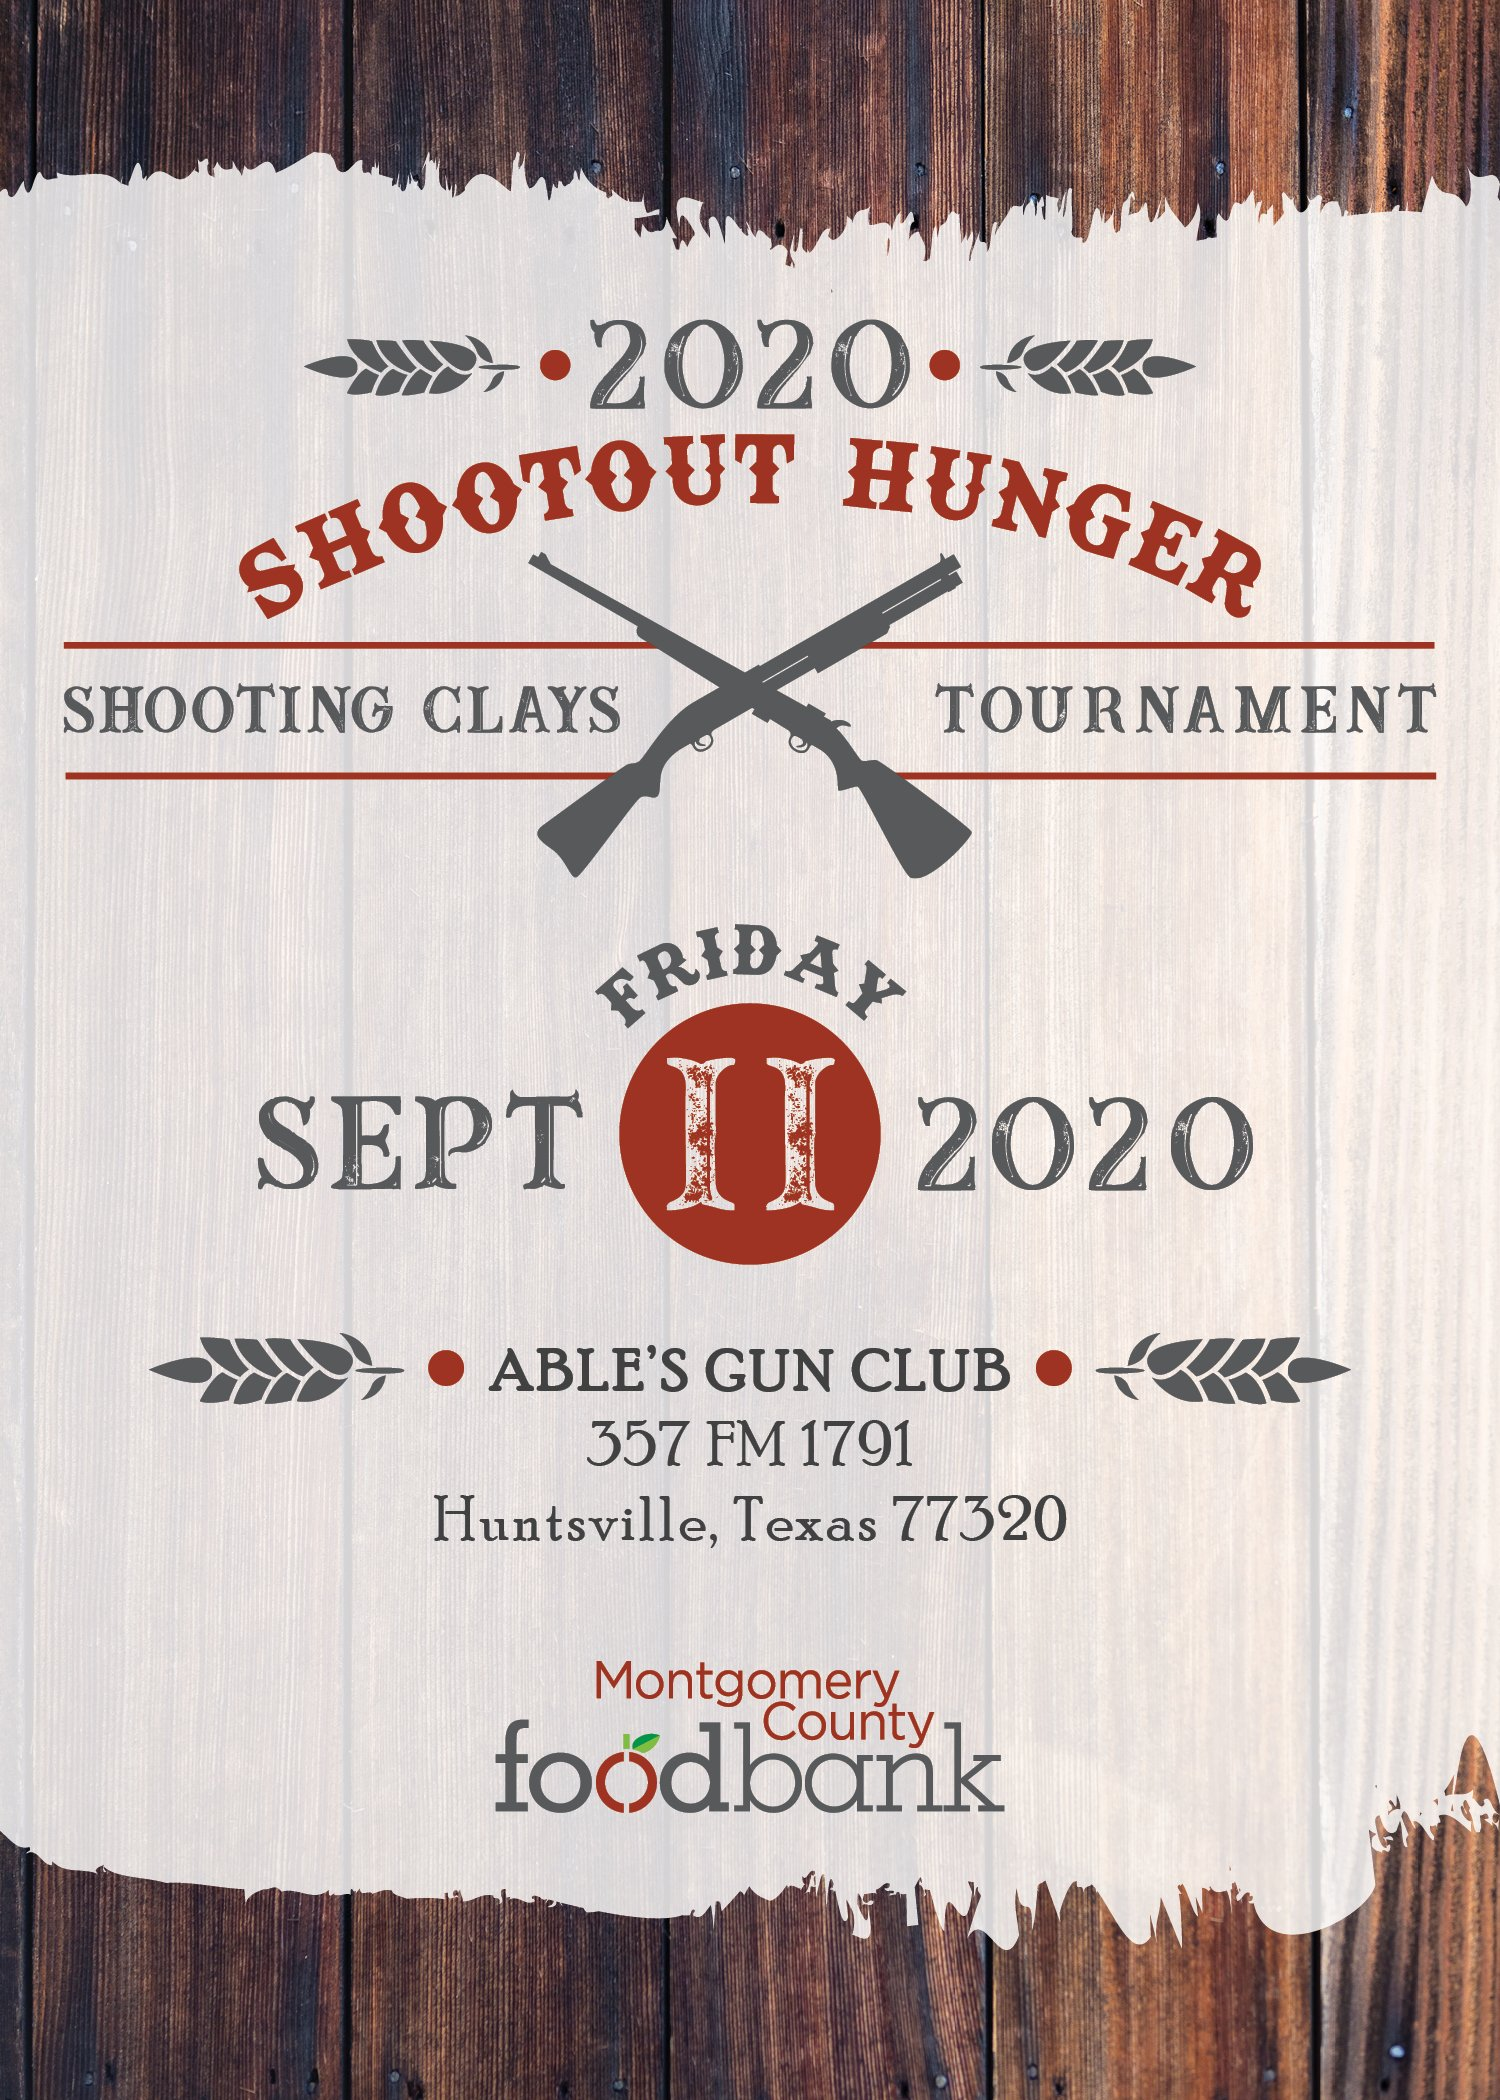 Shootout Hunger Save the Date 2020